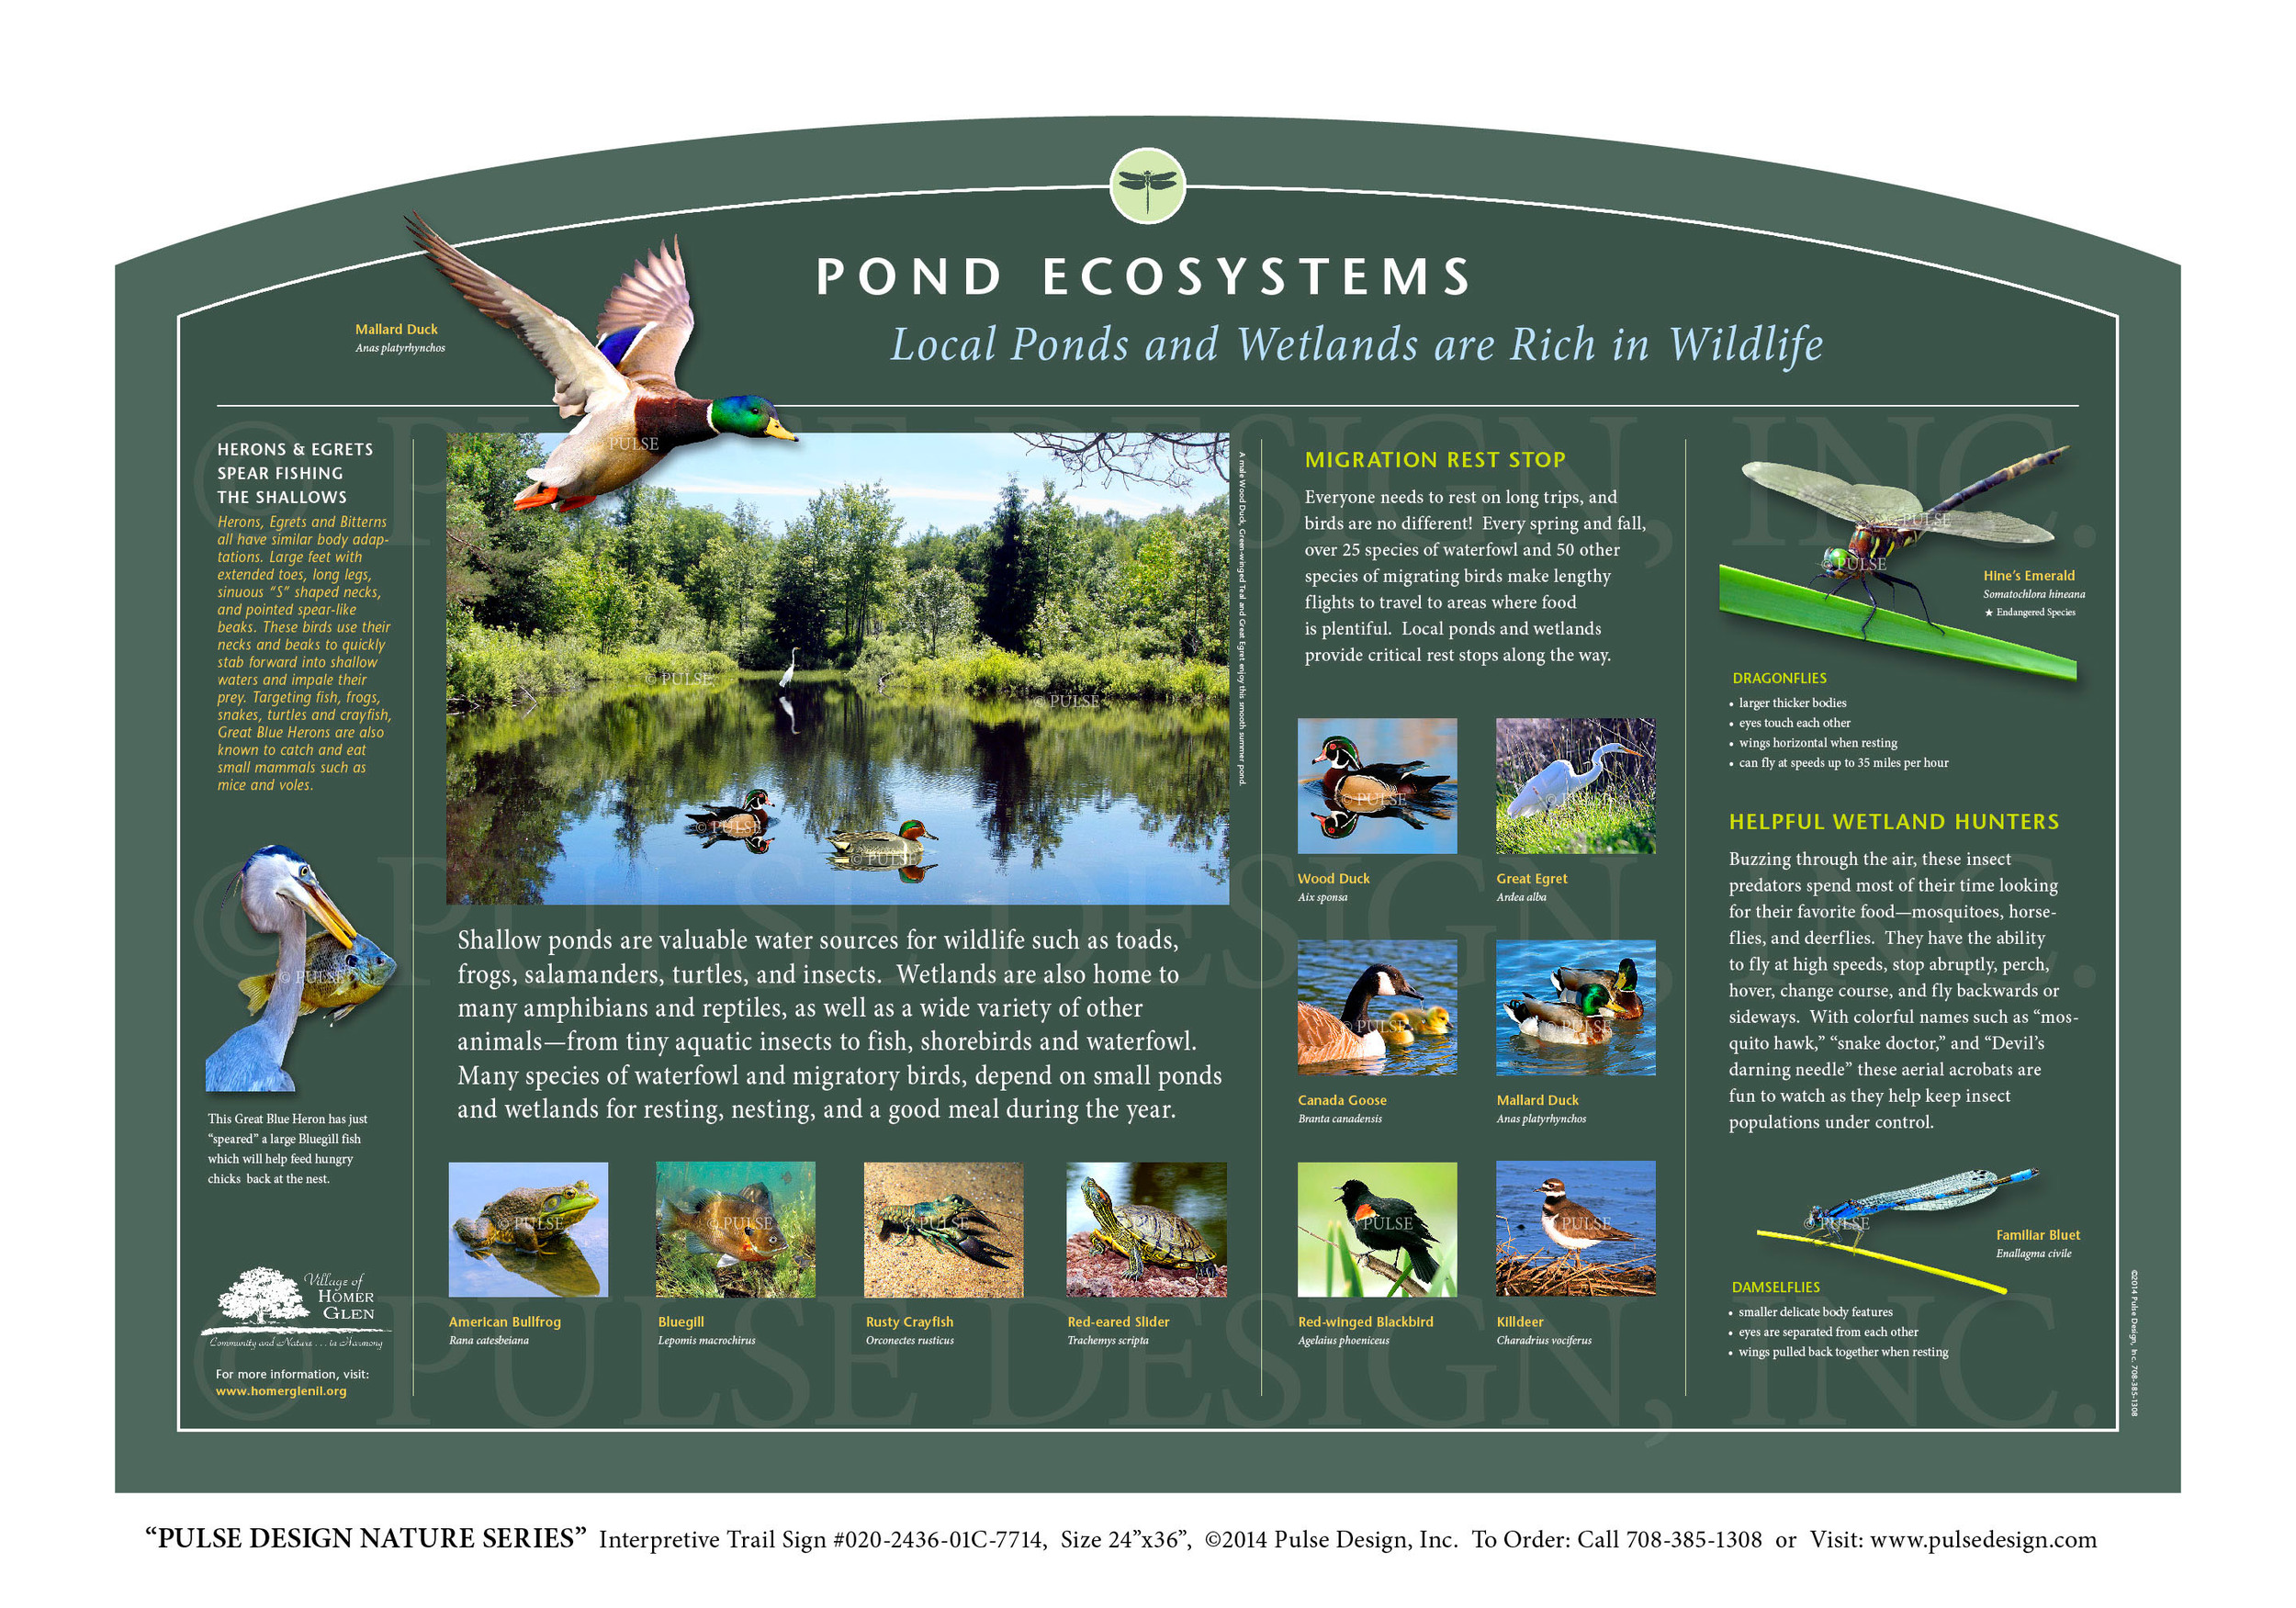 "Pulse Design provides Outdoor Interpretive Nature Trail Signs, Environmental Education Exhibits, Graphic Display Panels, Wayfinding Signage and Monuments, focused on Wildlife and Habitat throughout the United States. The  PULSE DESIGN NATURE SERIES  is a beautiful, ""Ready-to-Order"" and ""Customizable"" series of interpretive trail signs that cover many common nature subjects. See more signs from our  WATER & WETLAND HABITAT SERIES ."